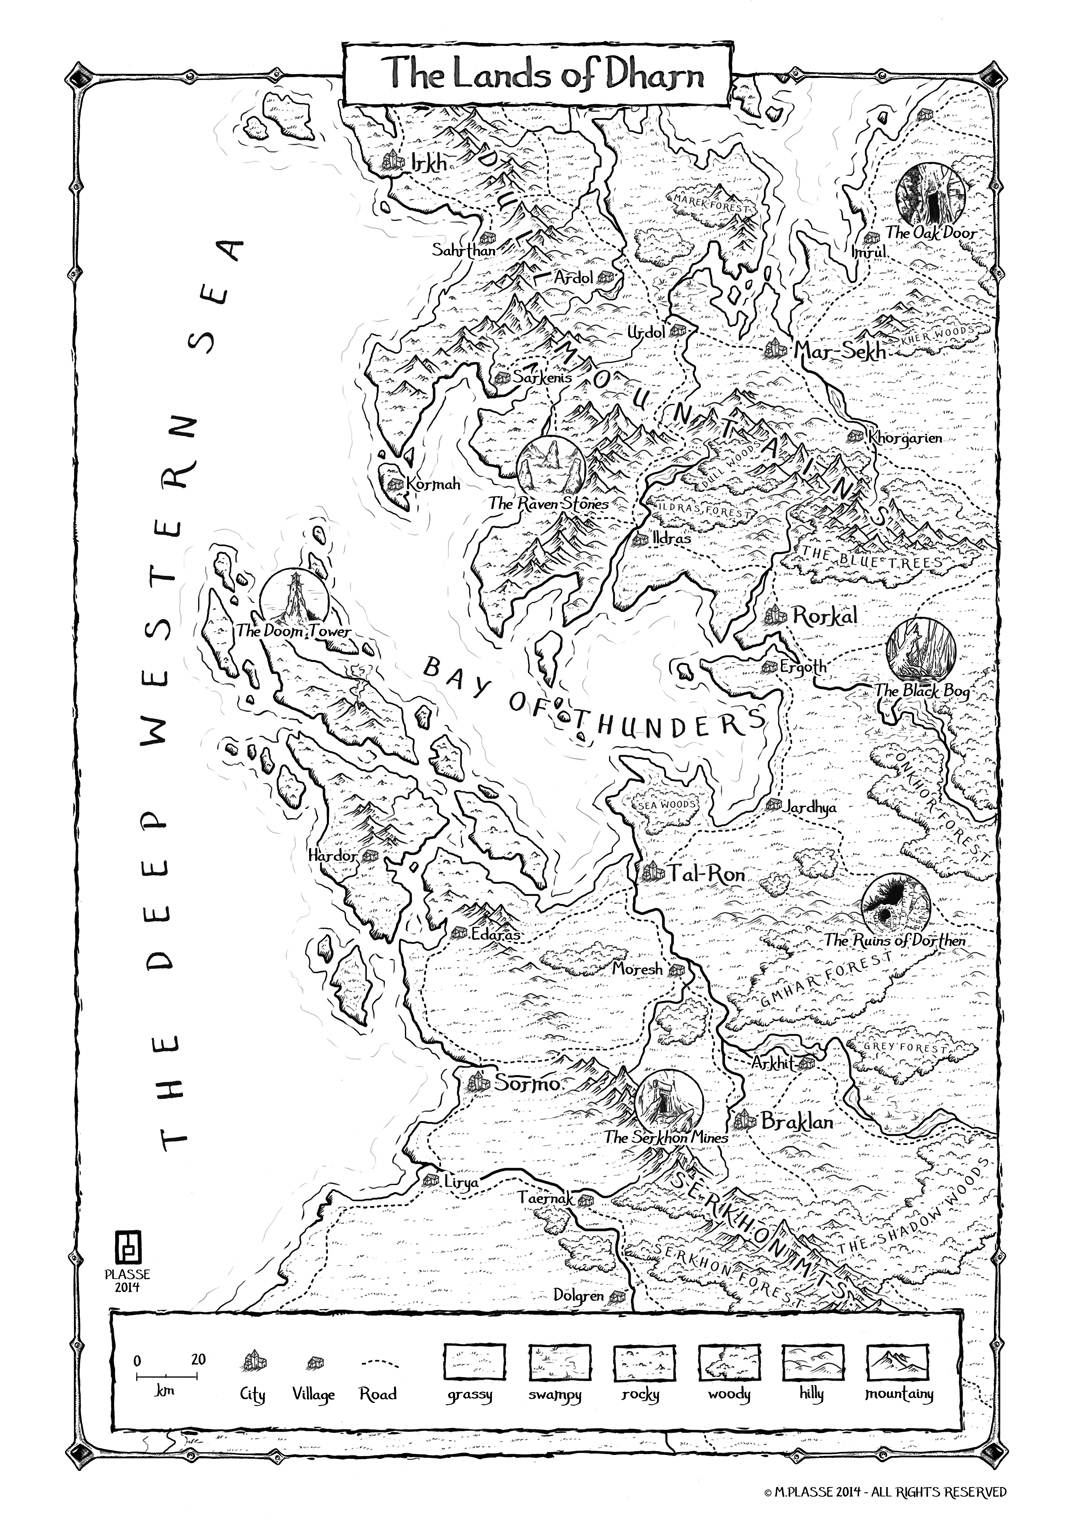 Lands of Dharn - Pure B&W map practising  � M.PLASSE 22014 - All rights reserved